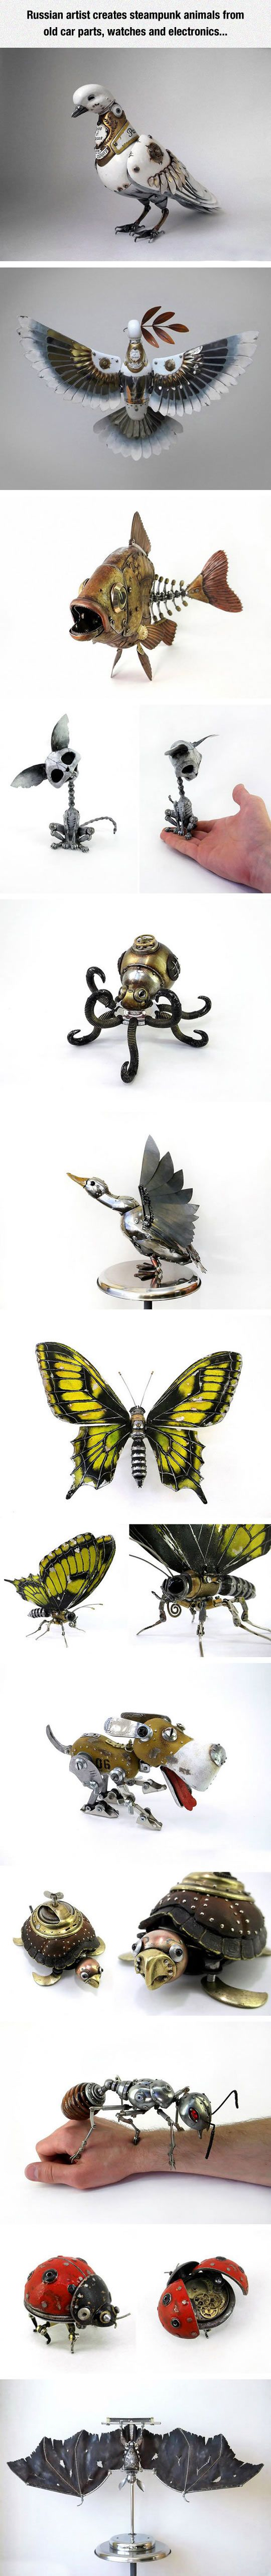 3D Art. Steampunk. Animals. Car Parts. Butterfly. Dog. Lady Bug. Cat. Bird. Sculpture. Metal. Watches. Electronics.